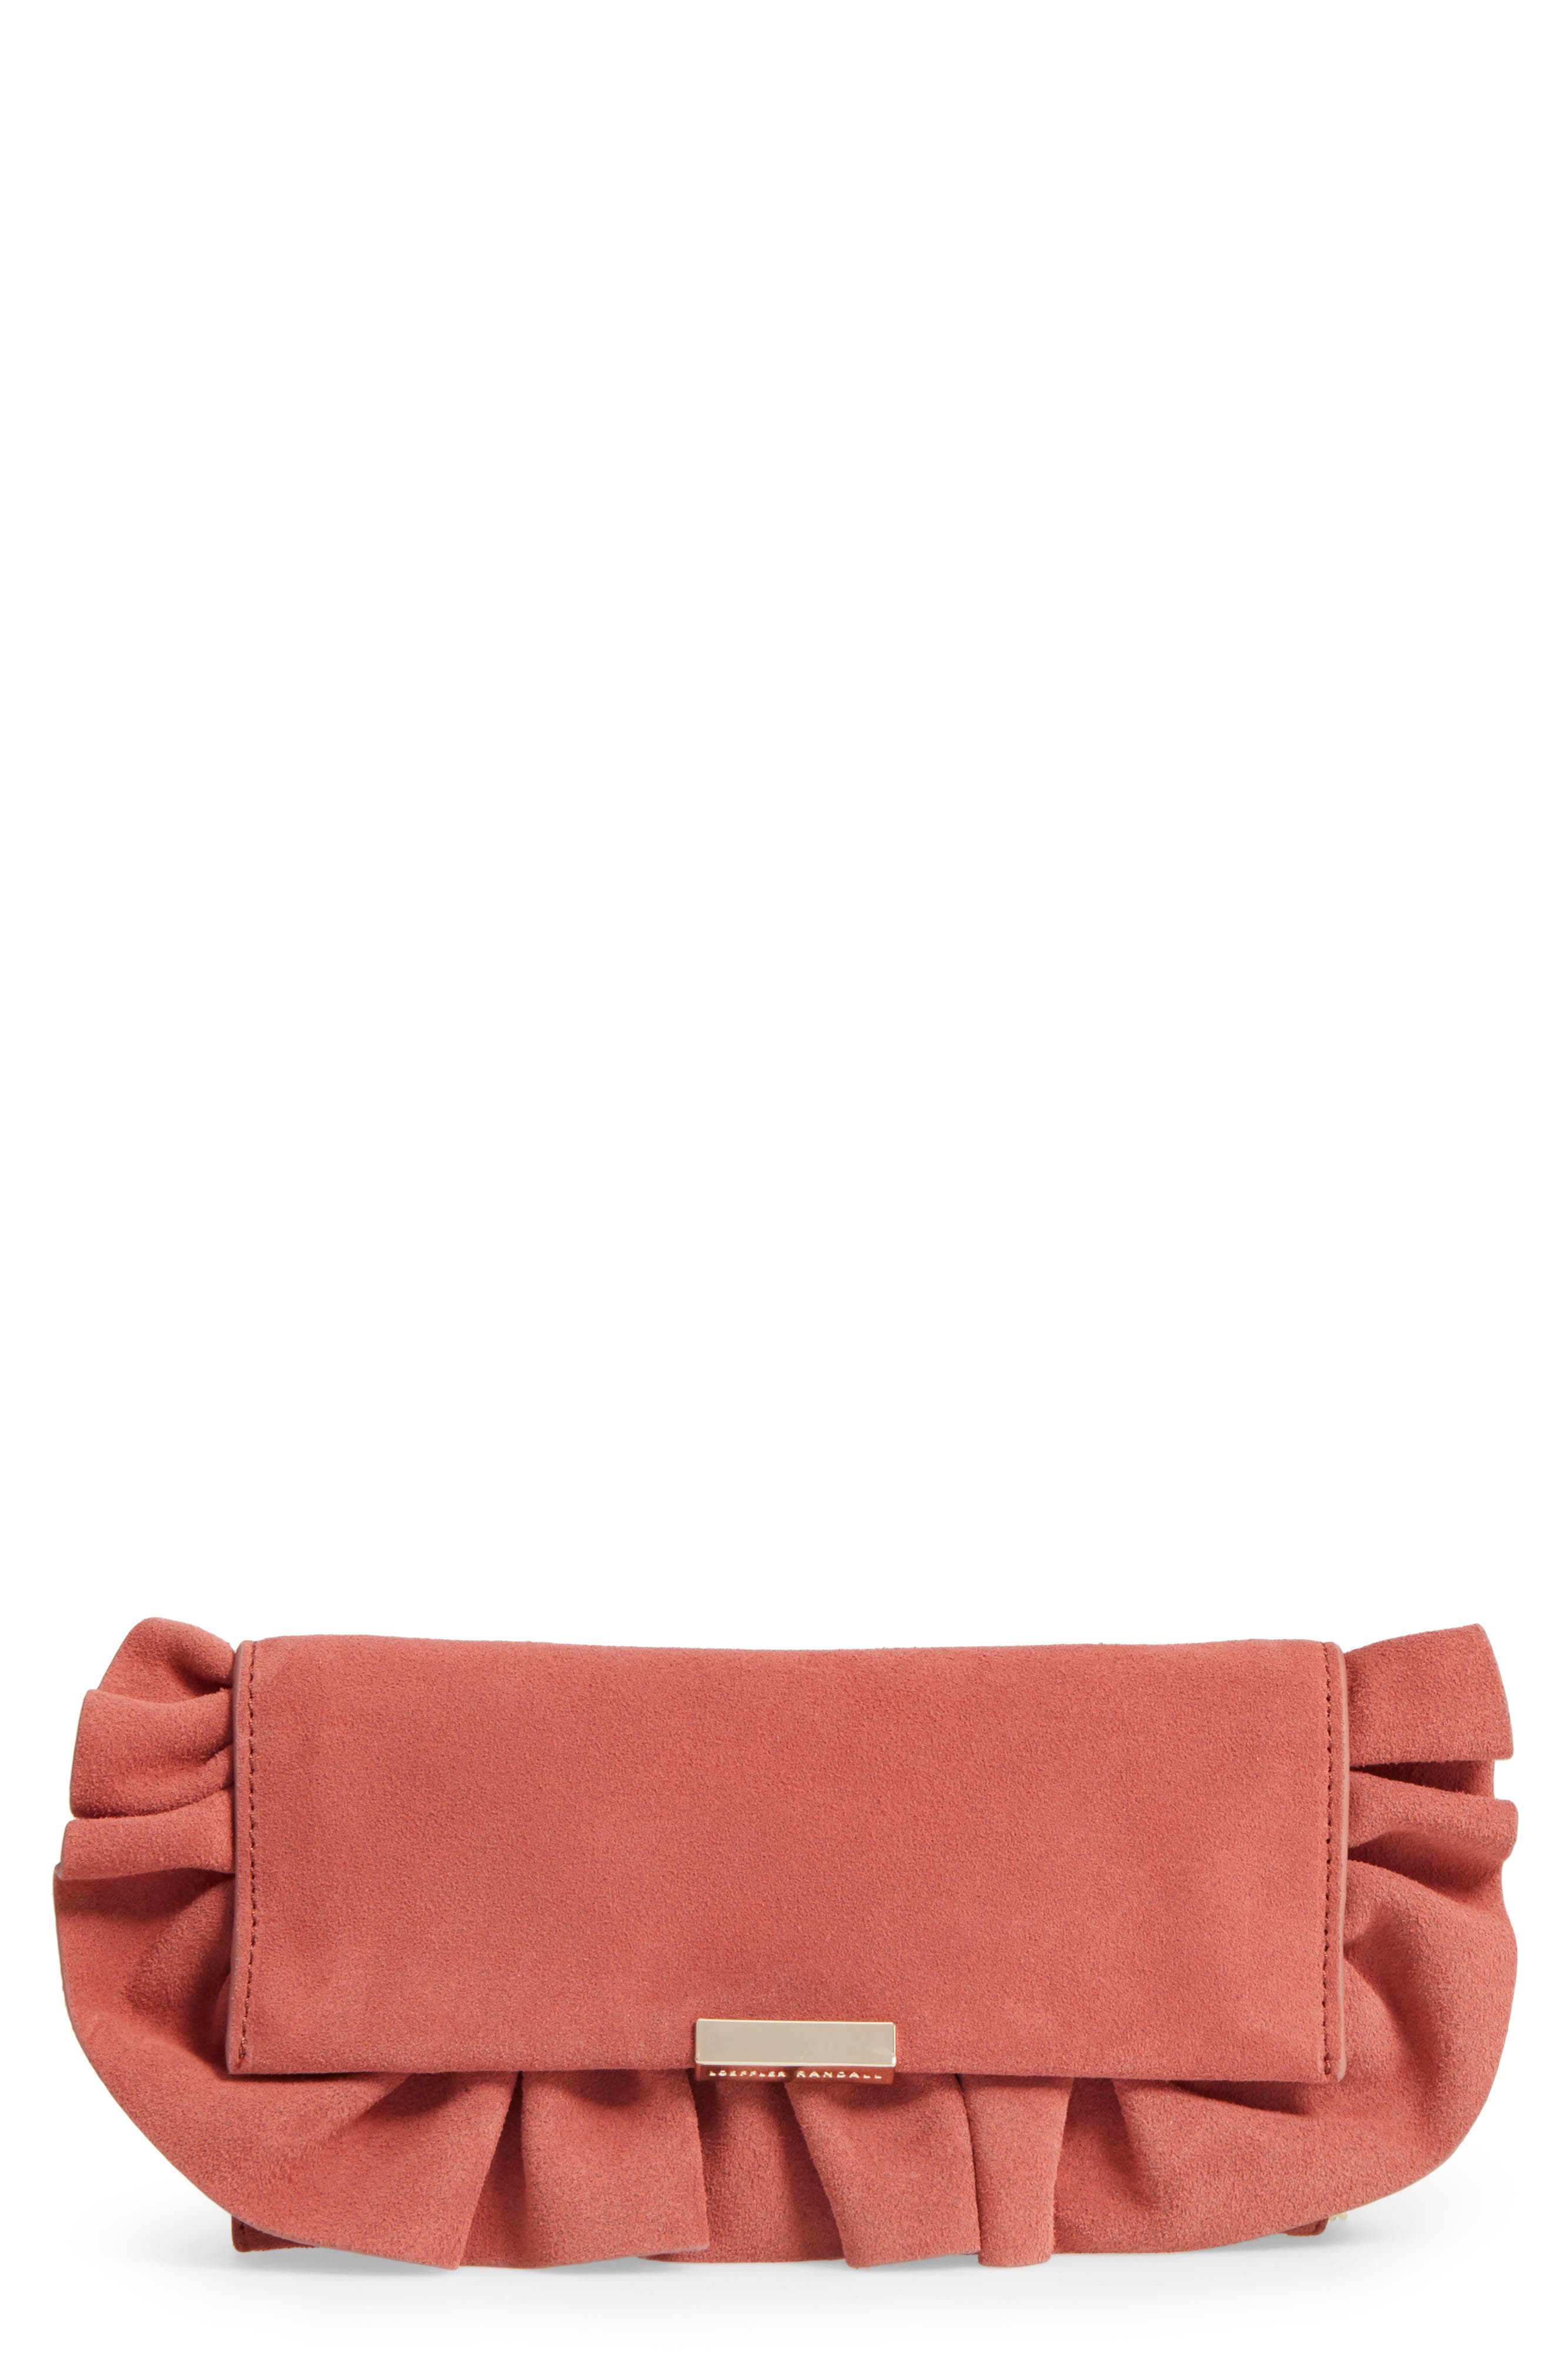 Ruffle Clutch,                         Main,                         color, Dusty Rose